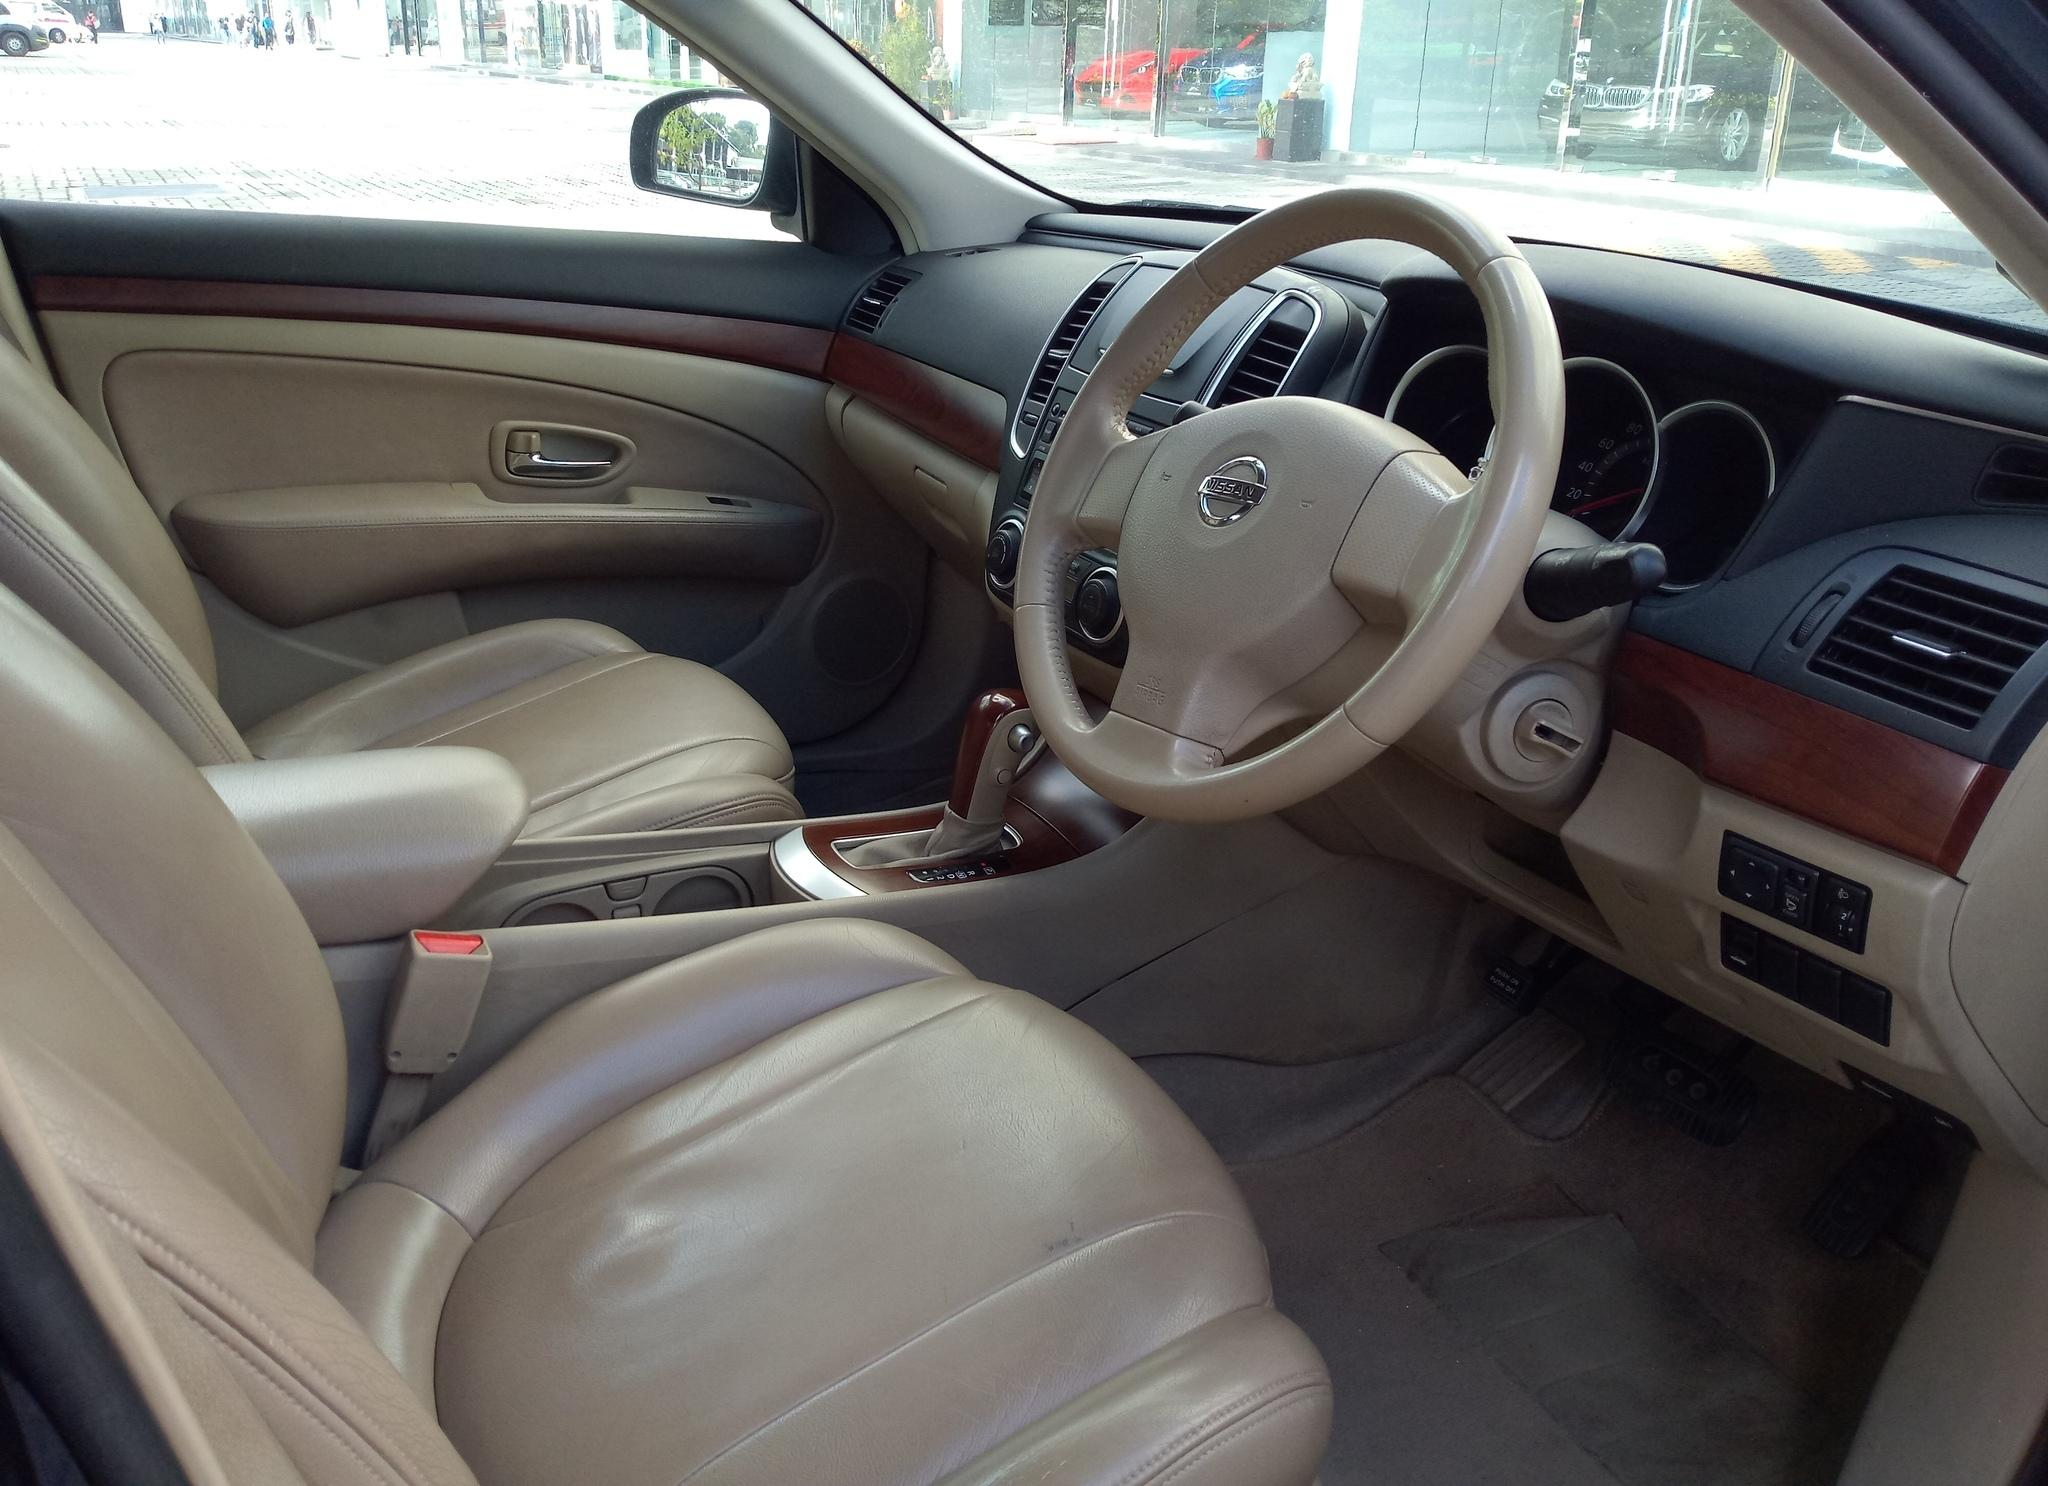 Nissan SYLPHY 1.5A Short Term or Long Term Rental Car Service